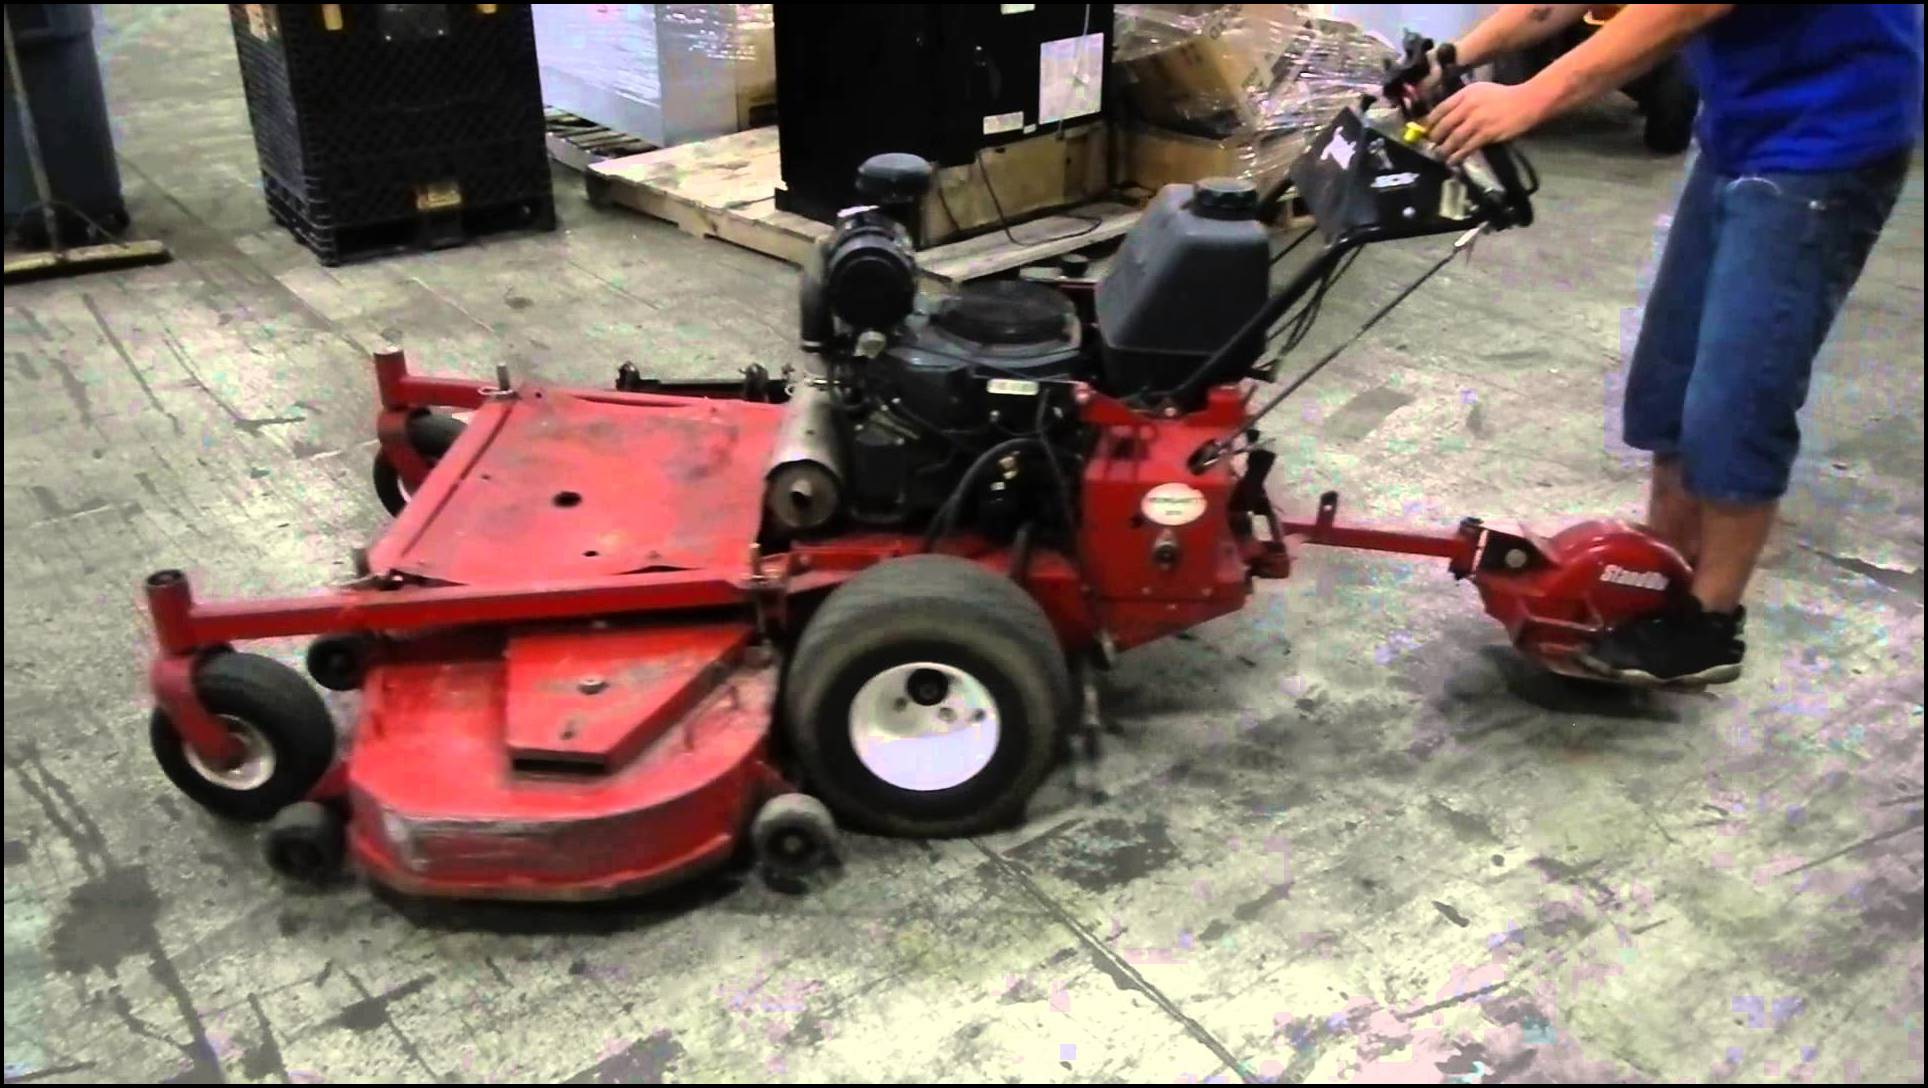 Stand Behind Lawn Mower